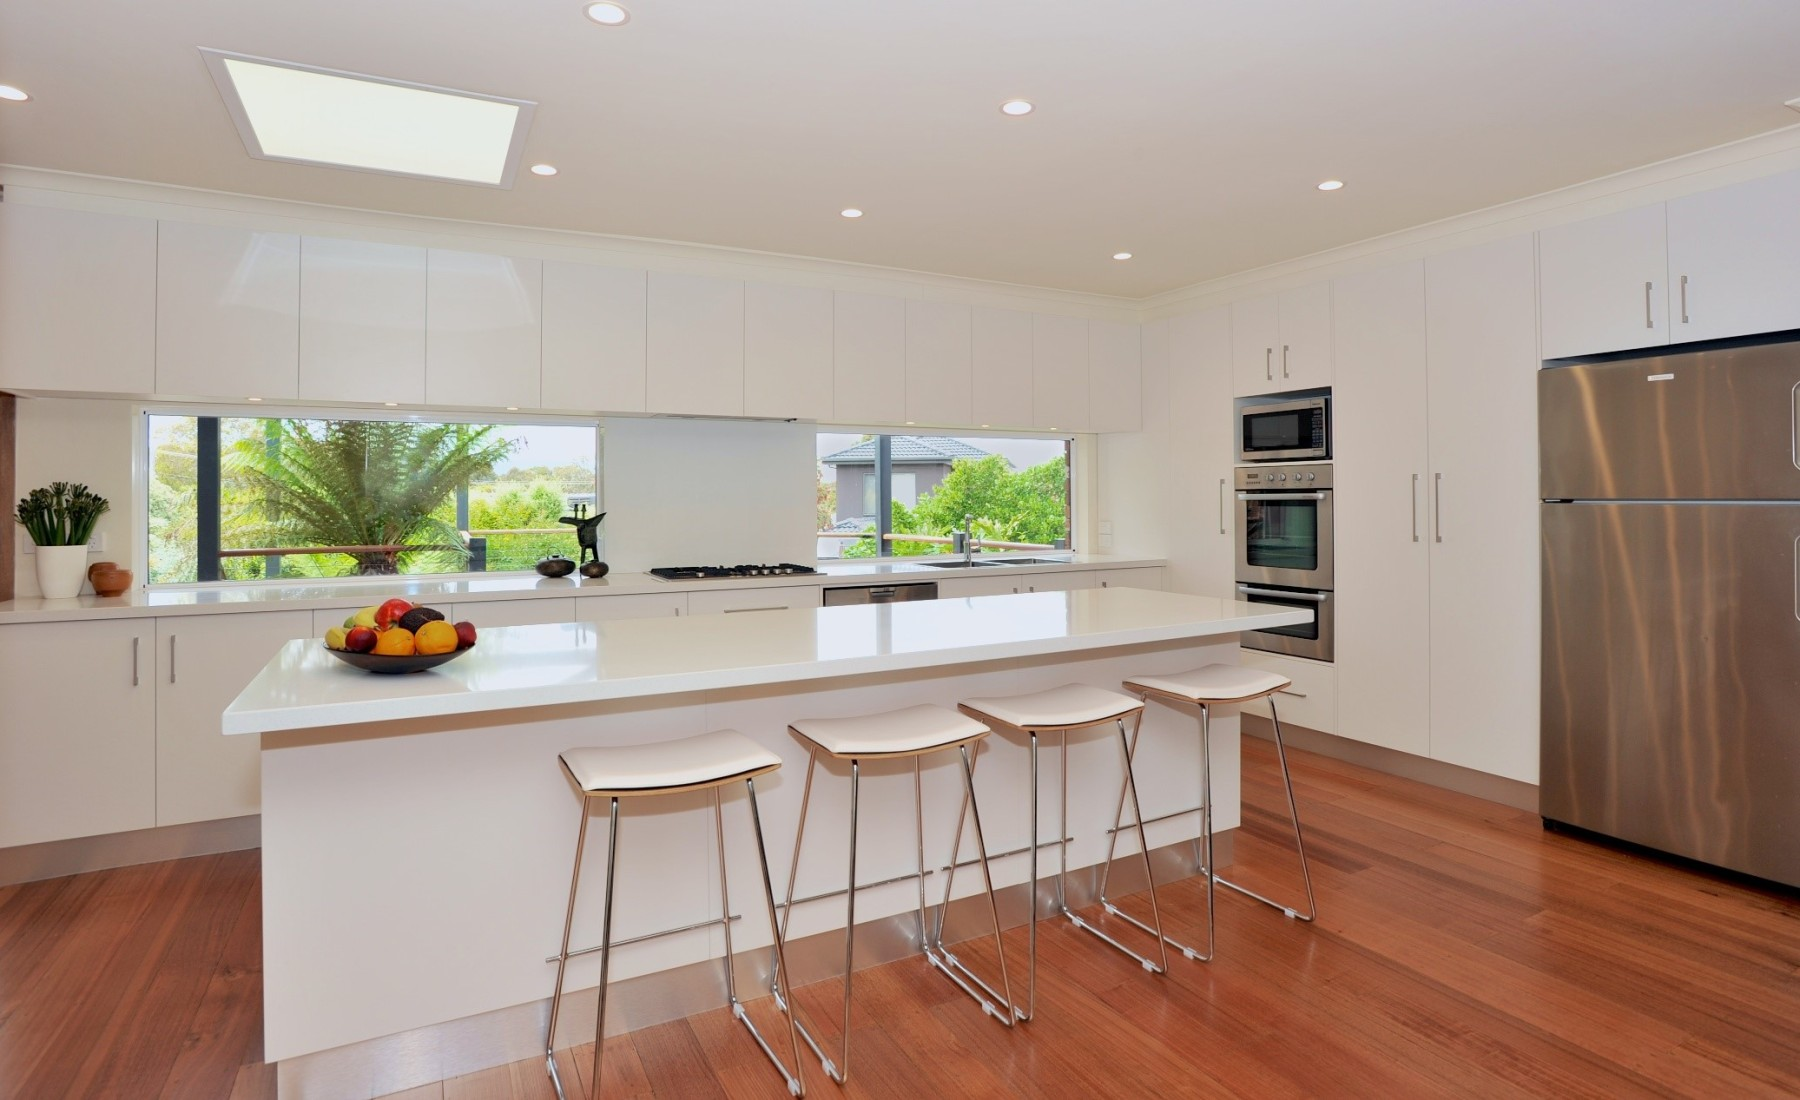 Kitchens Carrum Downs, New Kitchens, Kitchens Narre Warren, Cabinet Maker Melbourne, Kitchens Melbourne, AC & V Kitchens